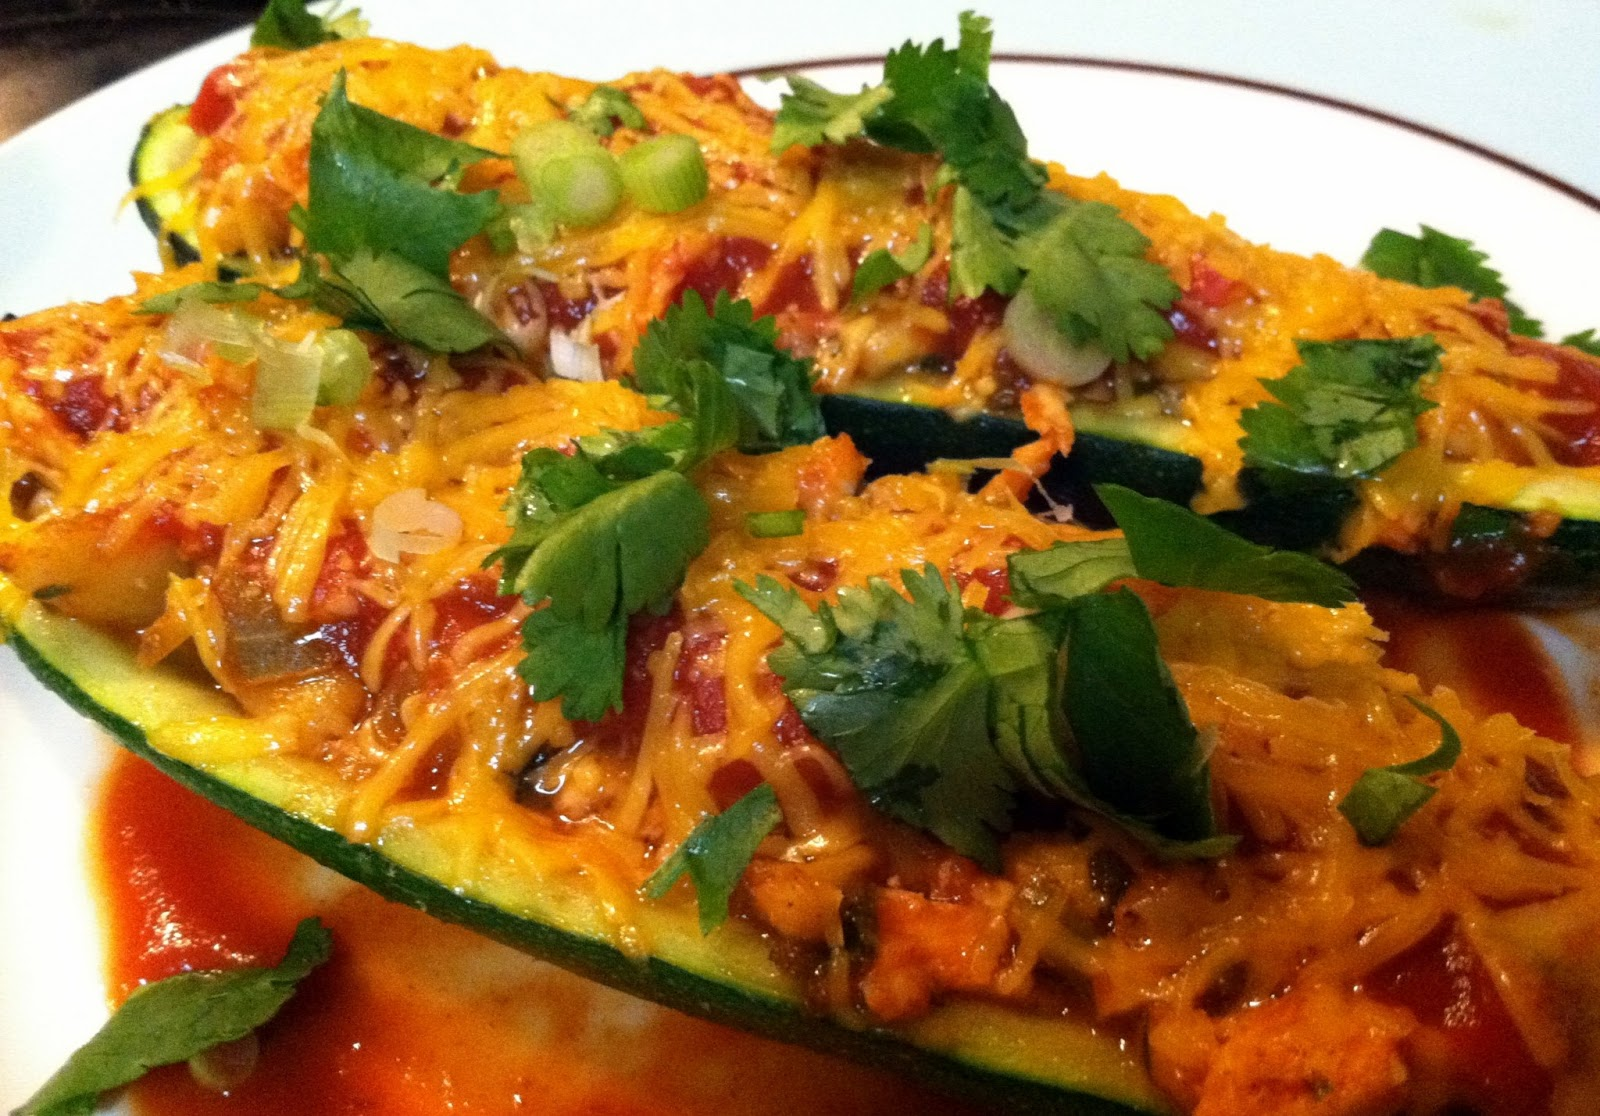 One Couple's Kitchen: Chicken Enchilada Stuffed Zucchini Boats